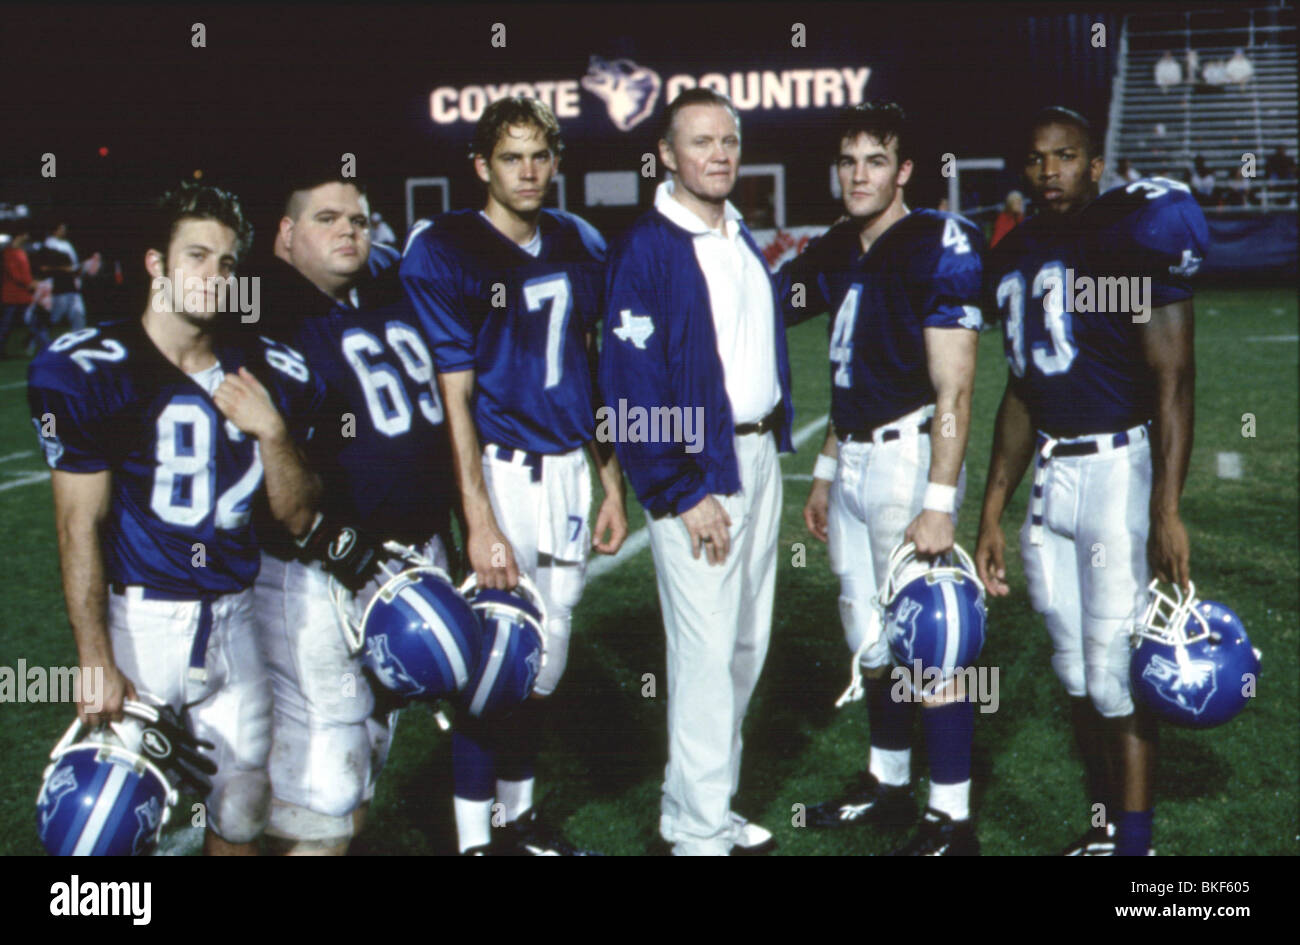 varsity blues ‎watch trailers, read customer and critic reviews, and buy varsity blues directed by brian robbins for $999.